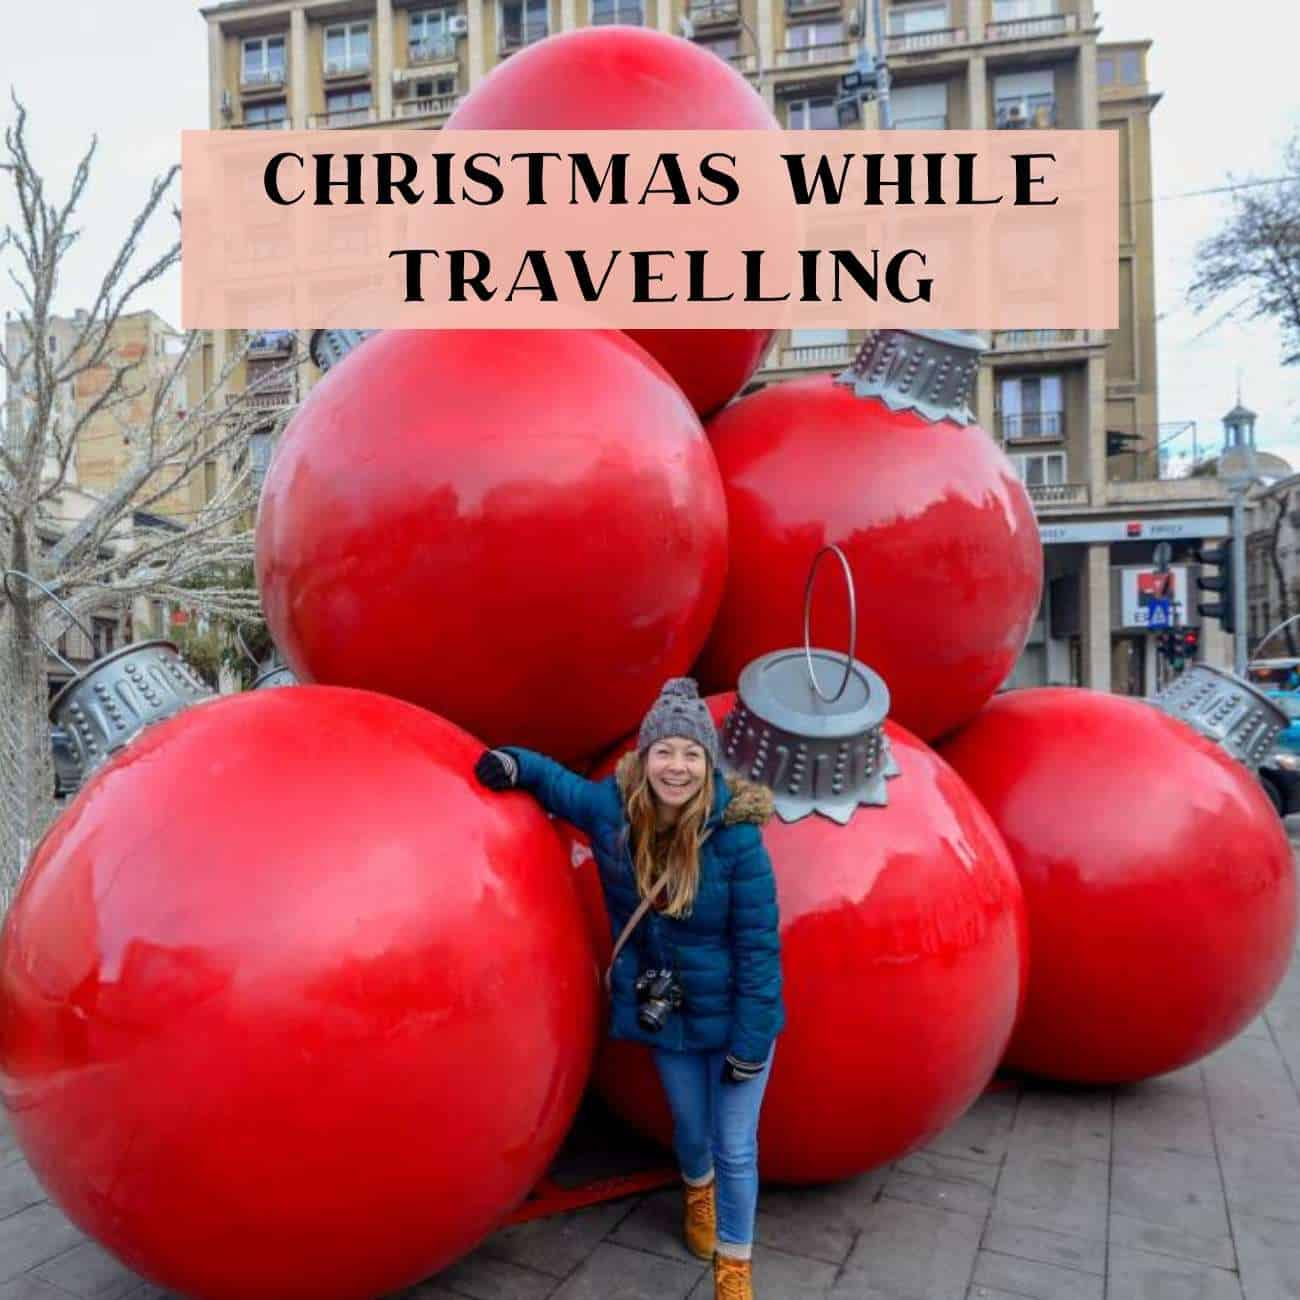 How to celebrate Christmas while travelling